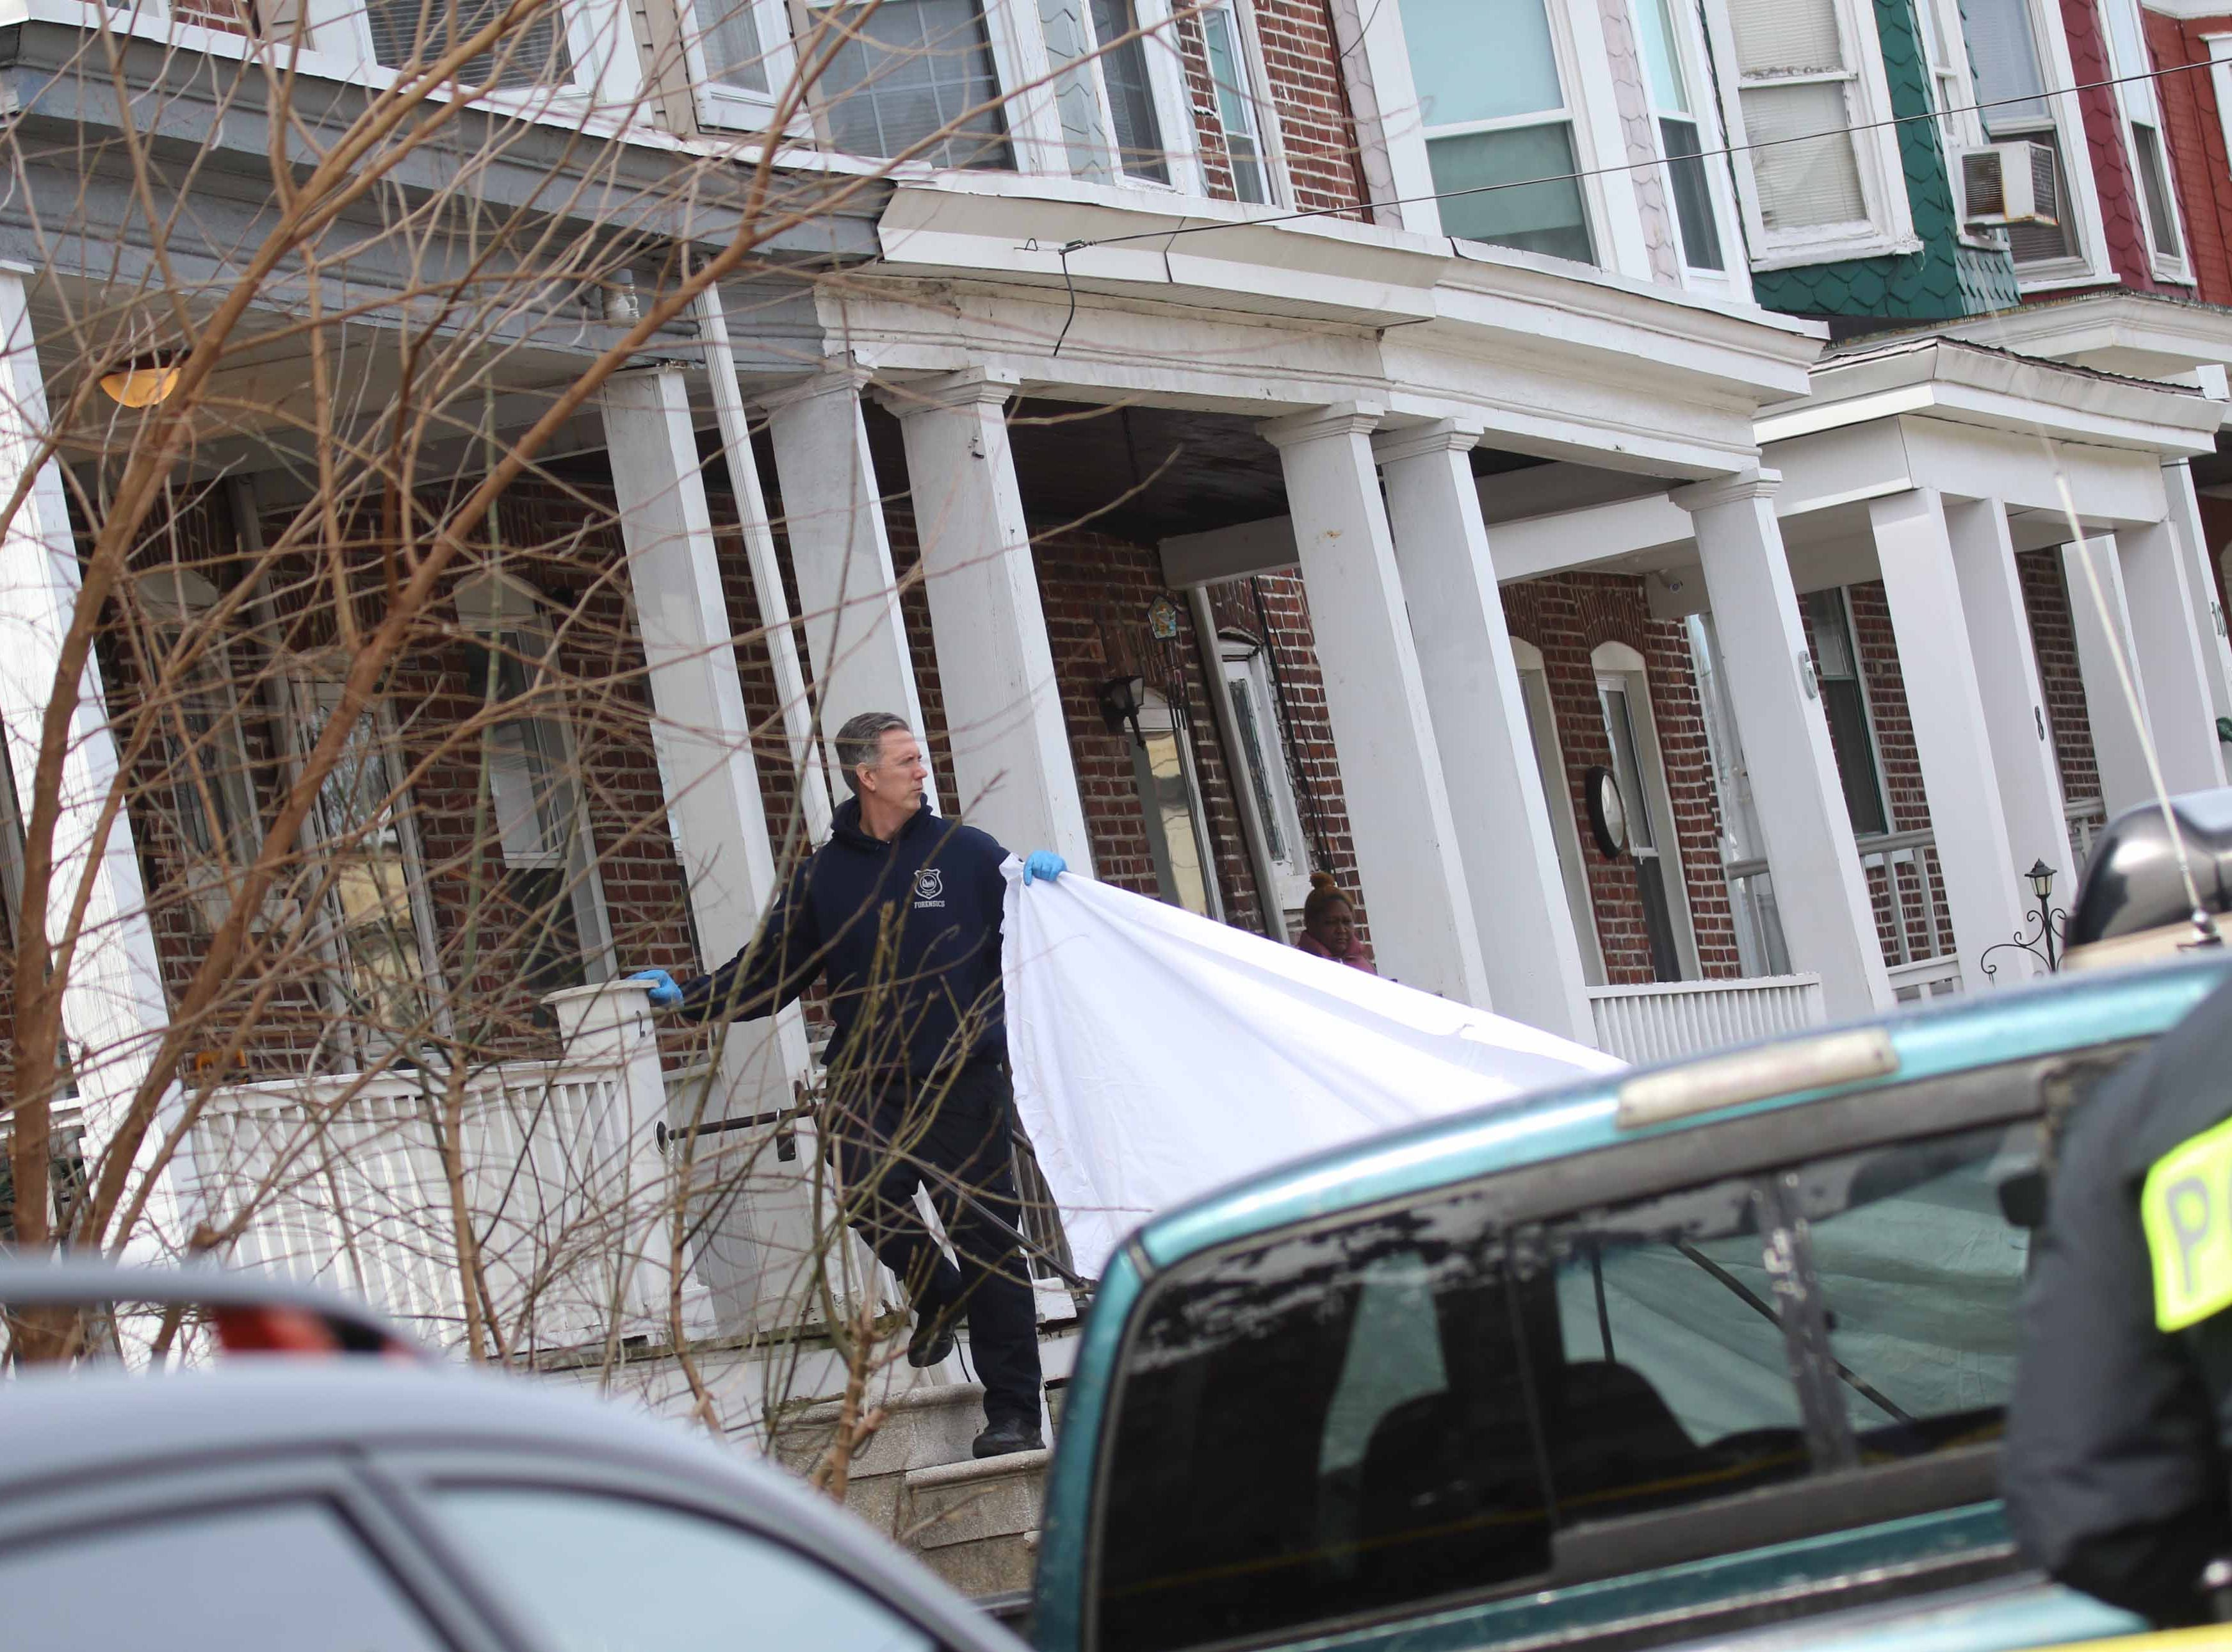 Police continue to investigate the crime scene on W. 26th and N. Market St. where two 17-year-olds were fatally shot Monday morning.